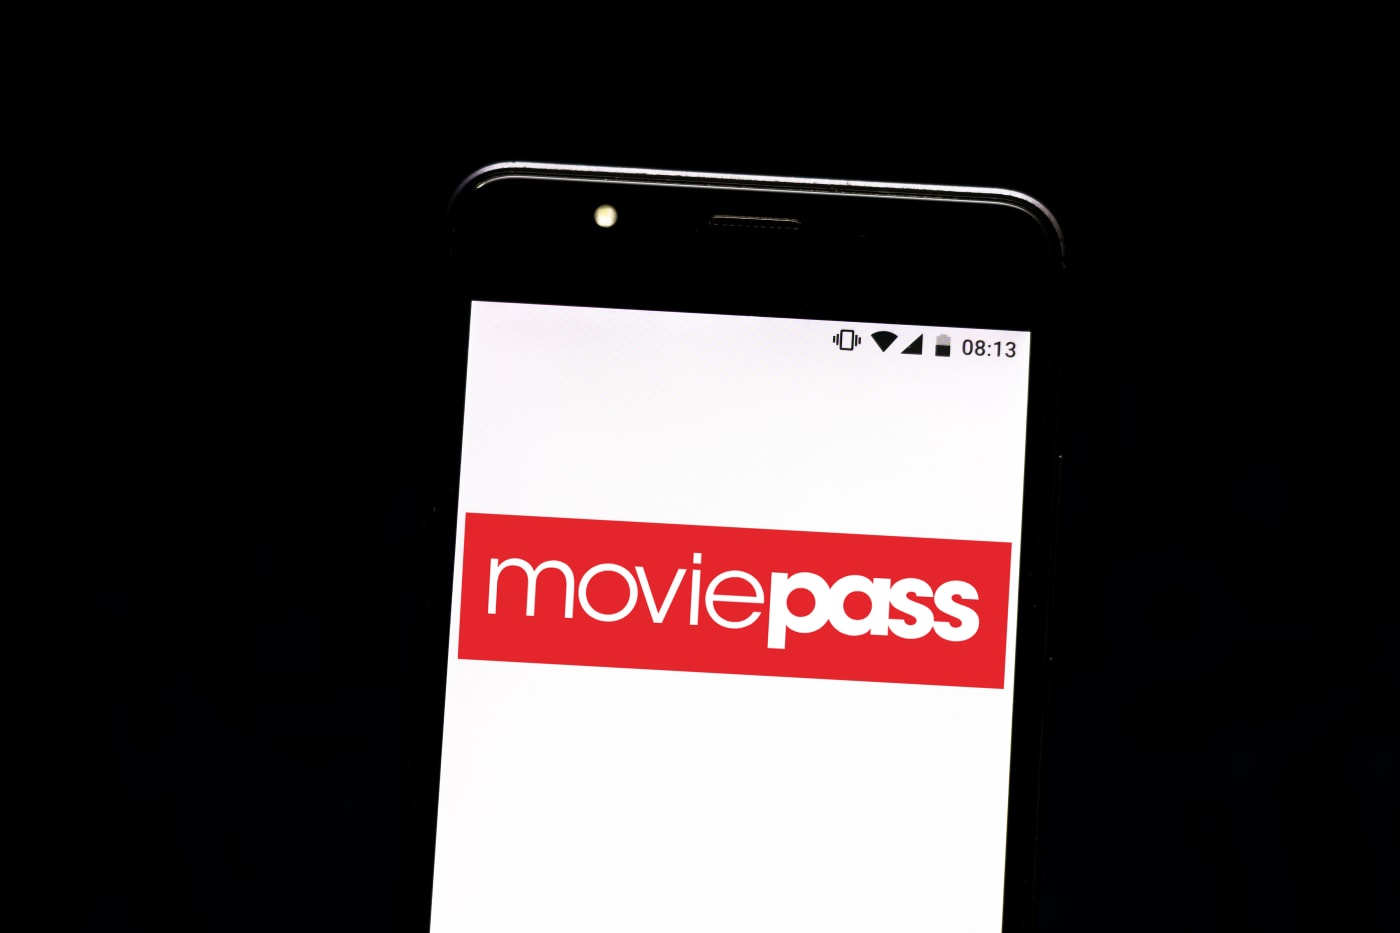 Moviepass Ticketing Service Rise and Fall